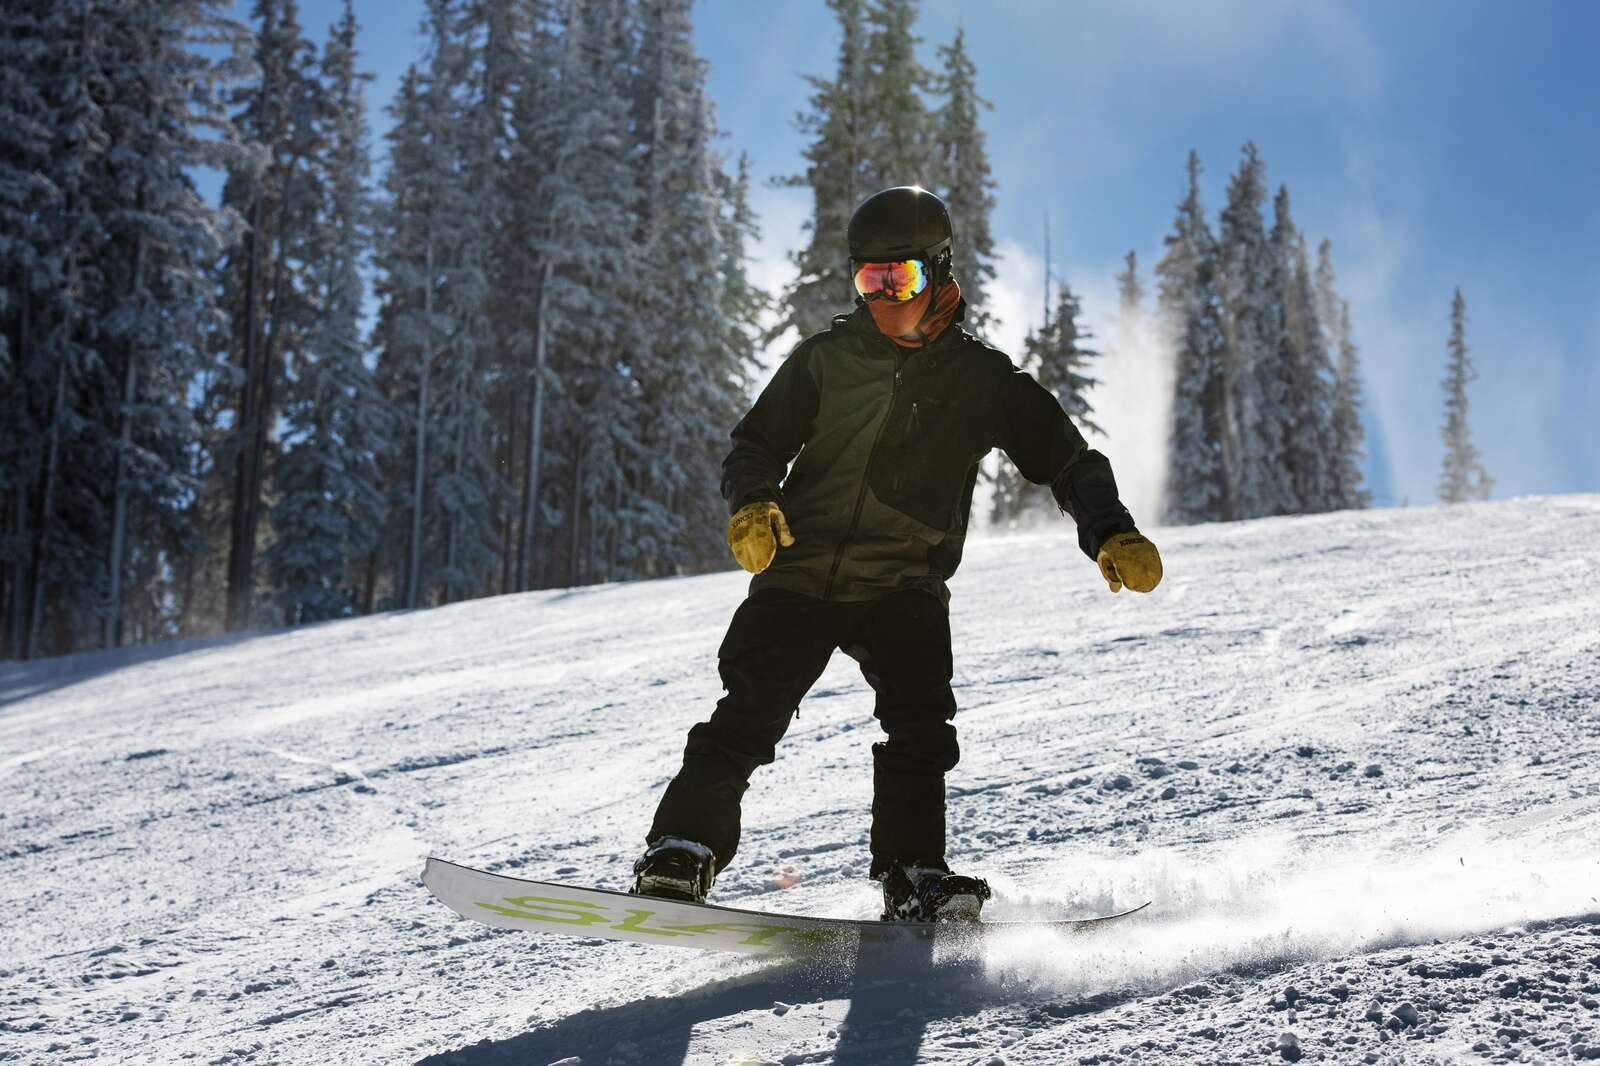 A snowboarder leans back on board on opening day on Aspen Mountain on Wednesday, Nov. 25, 2020. (Kelsey Brunner/The Aspen Times)